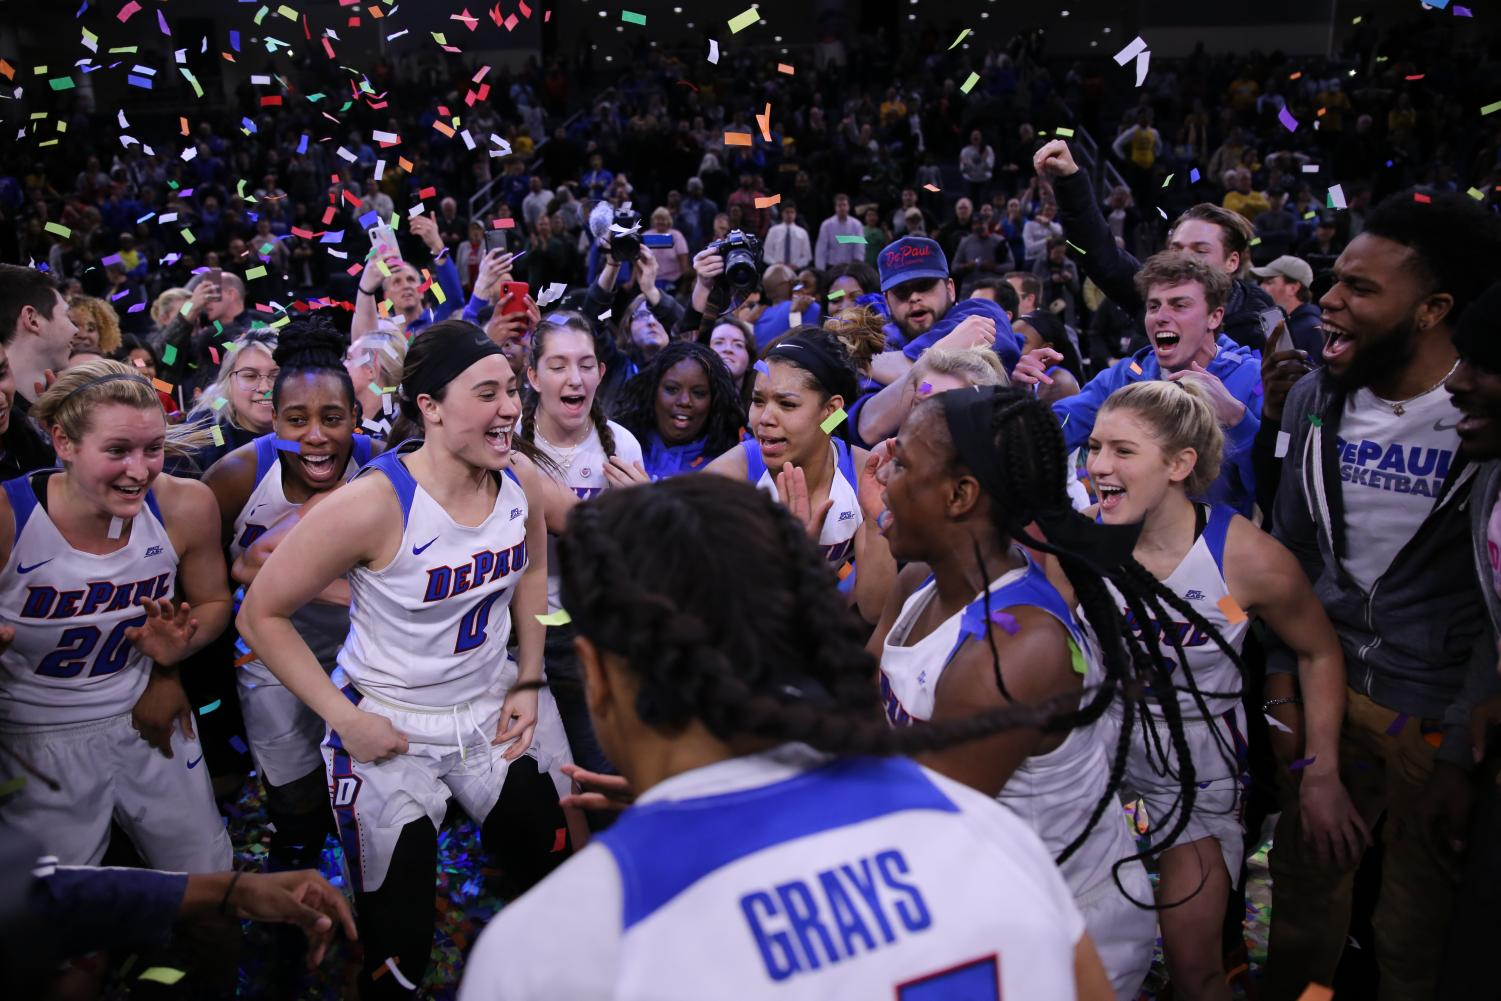 DePaul+players+and+fans+celebrate+a+second+consecutive+Big+East+Tournament+championship+for+the+Blue+Demons.+Alexa+Sandler+%7C+The+DePaulia